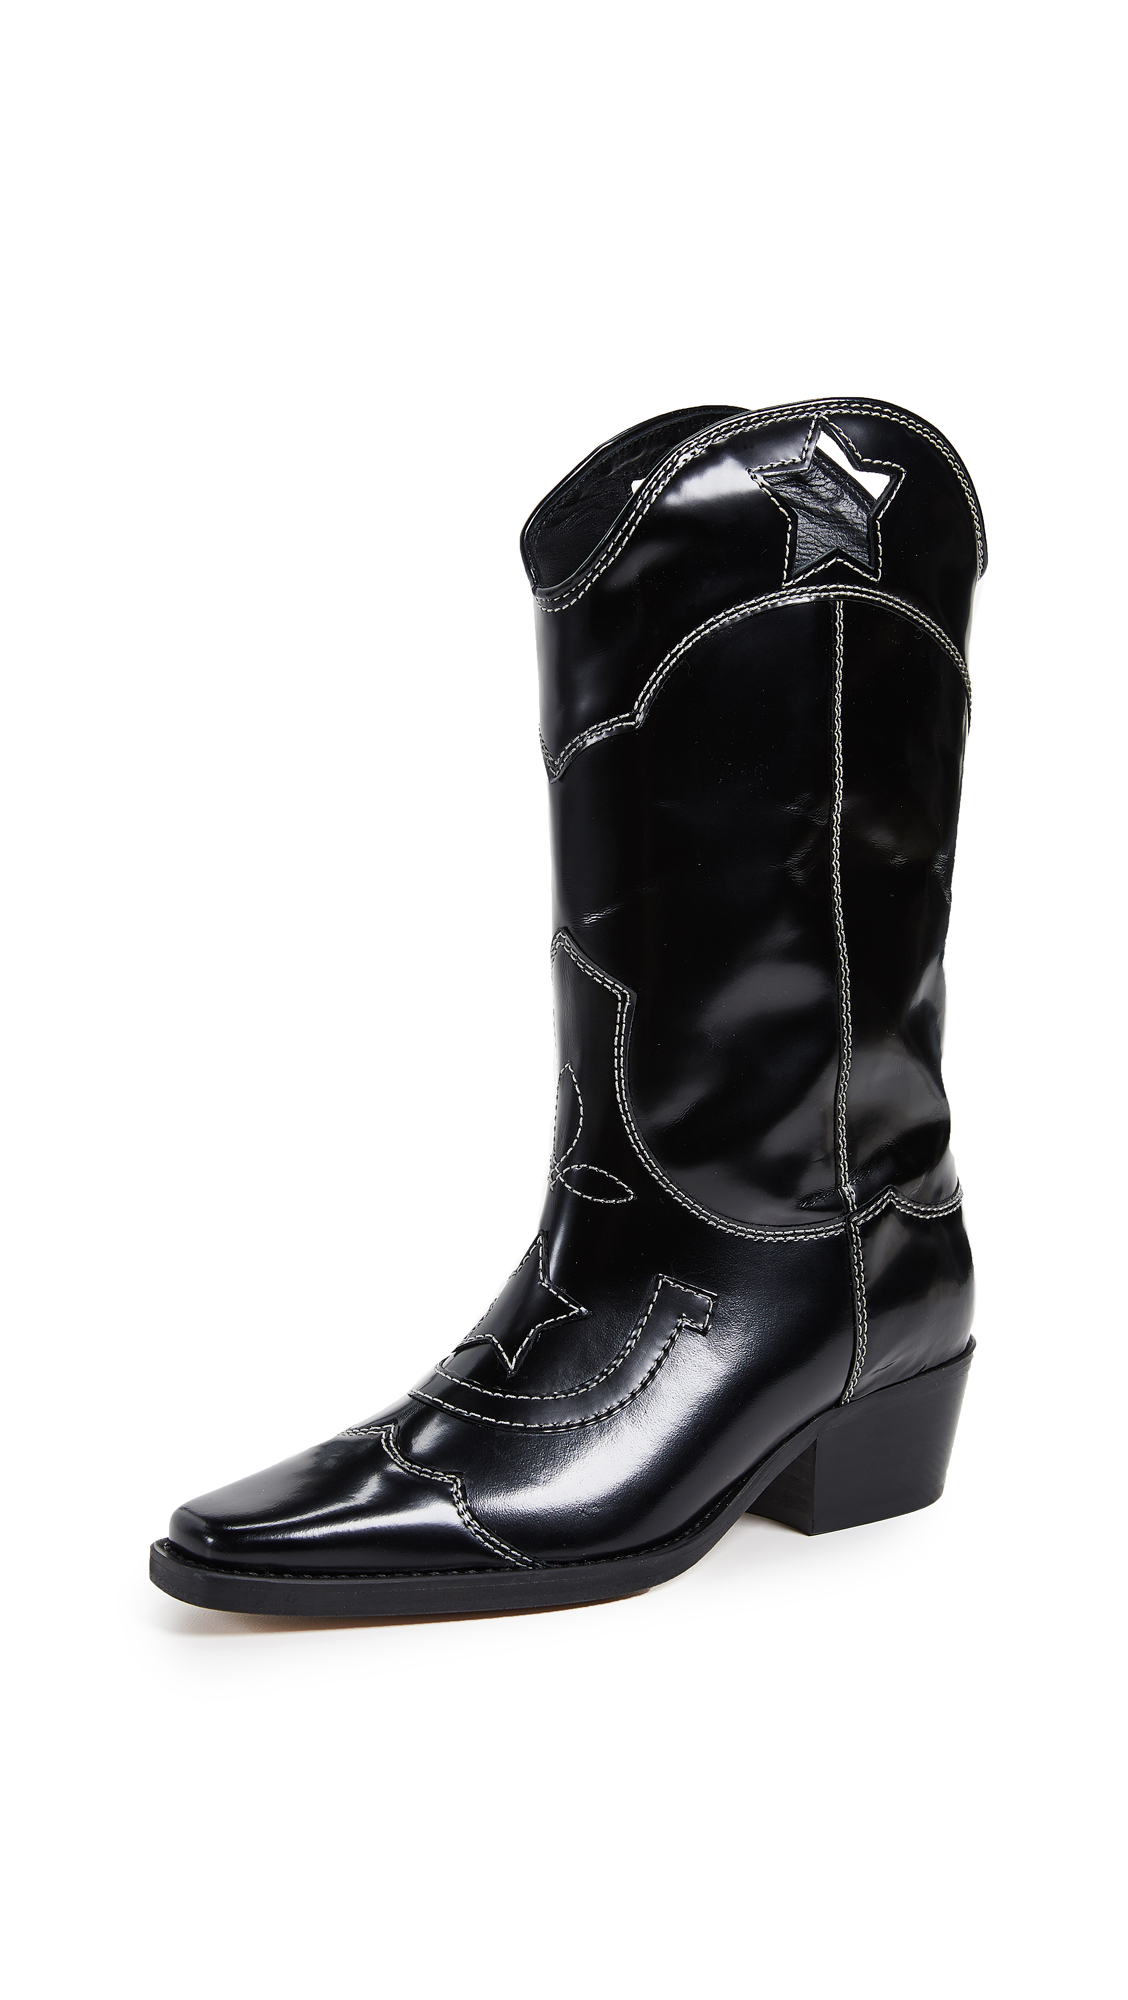 GANNI High Texas Boots - Black